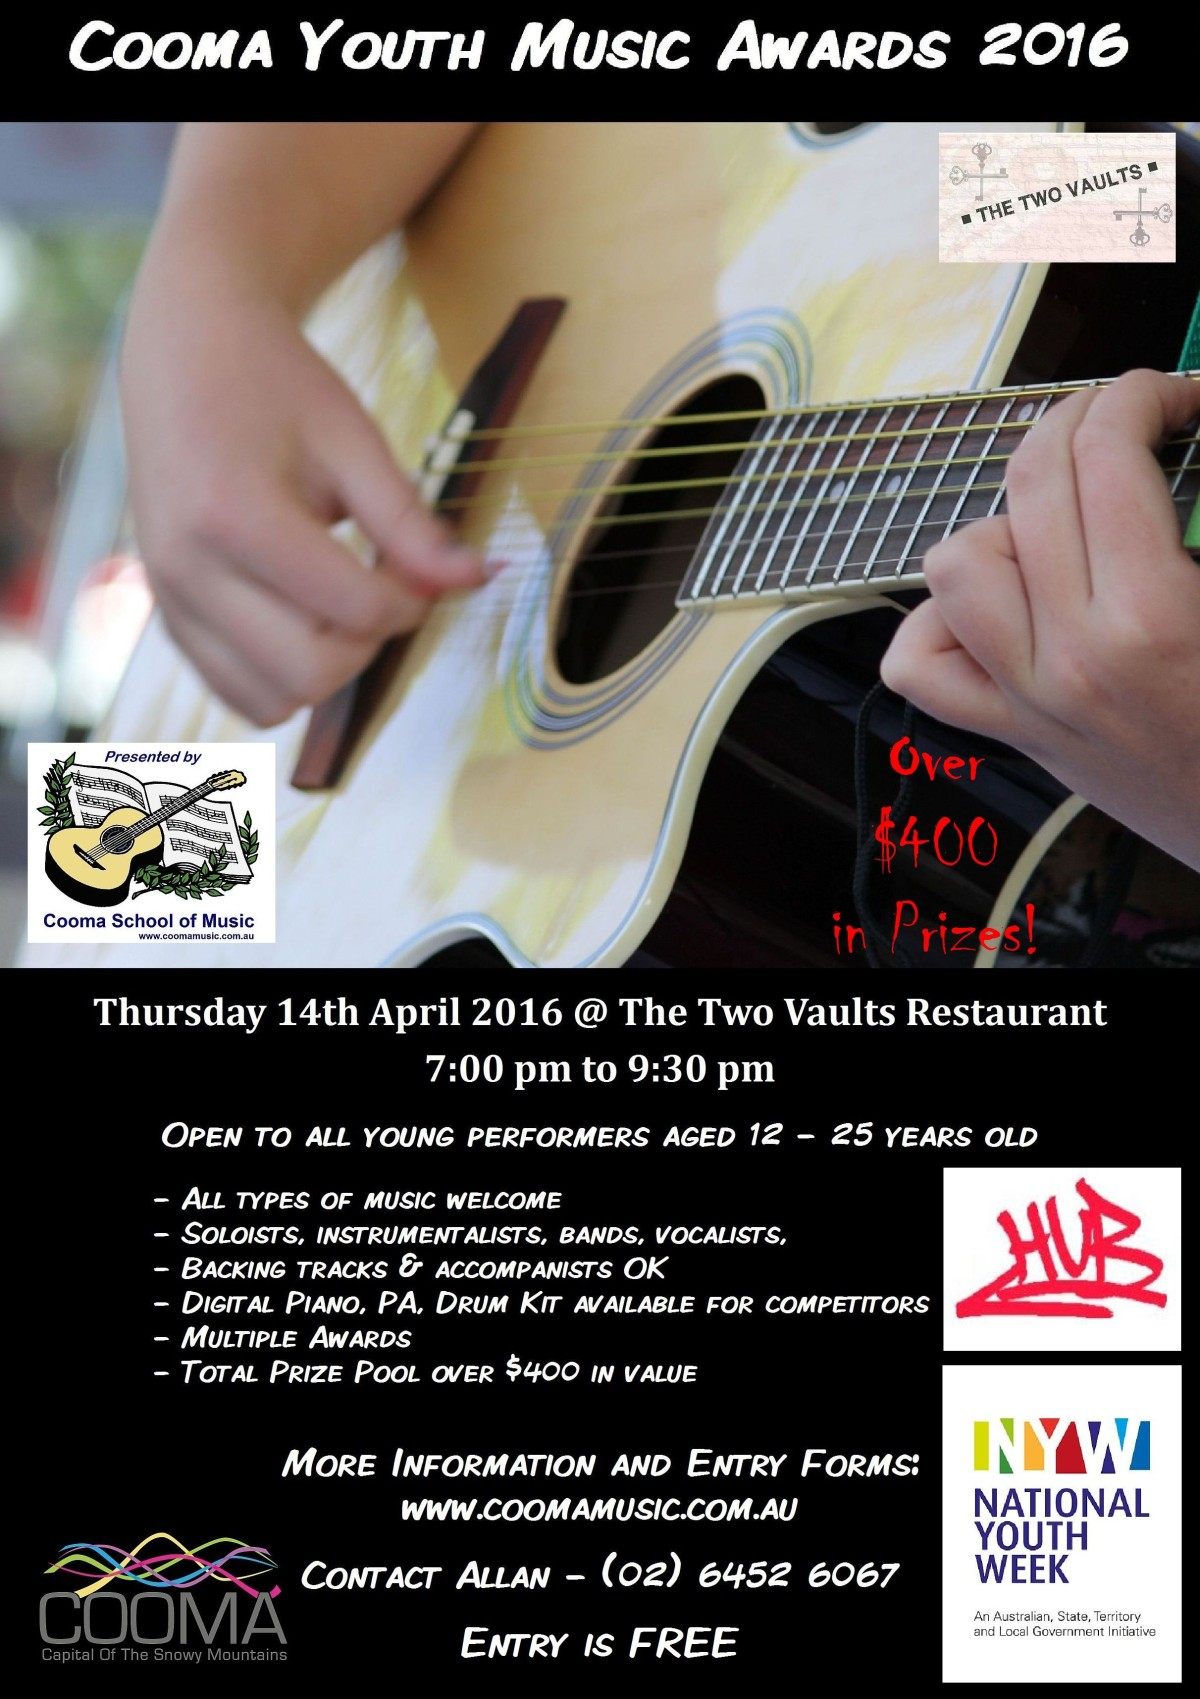 2016 cooma youth music awards poster